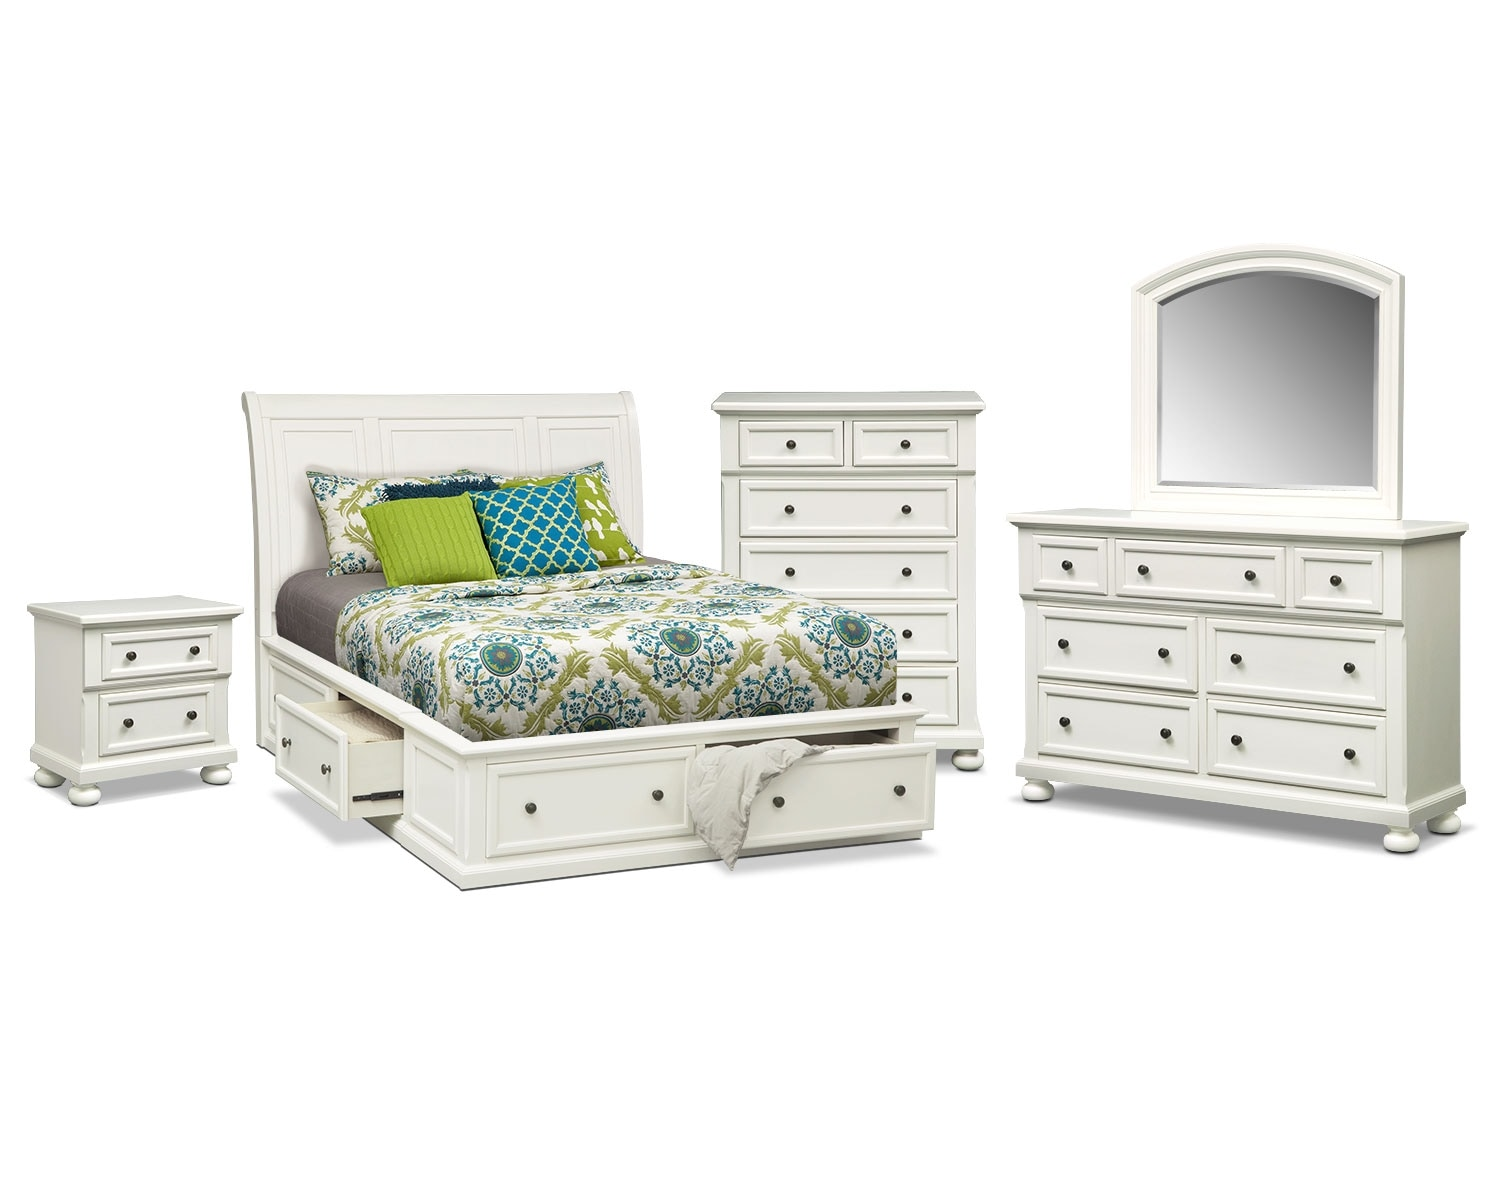 The Hanover Storage Bedroom Collection - White